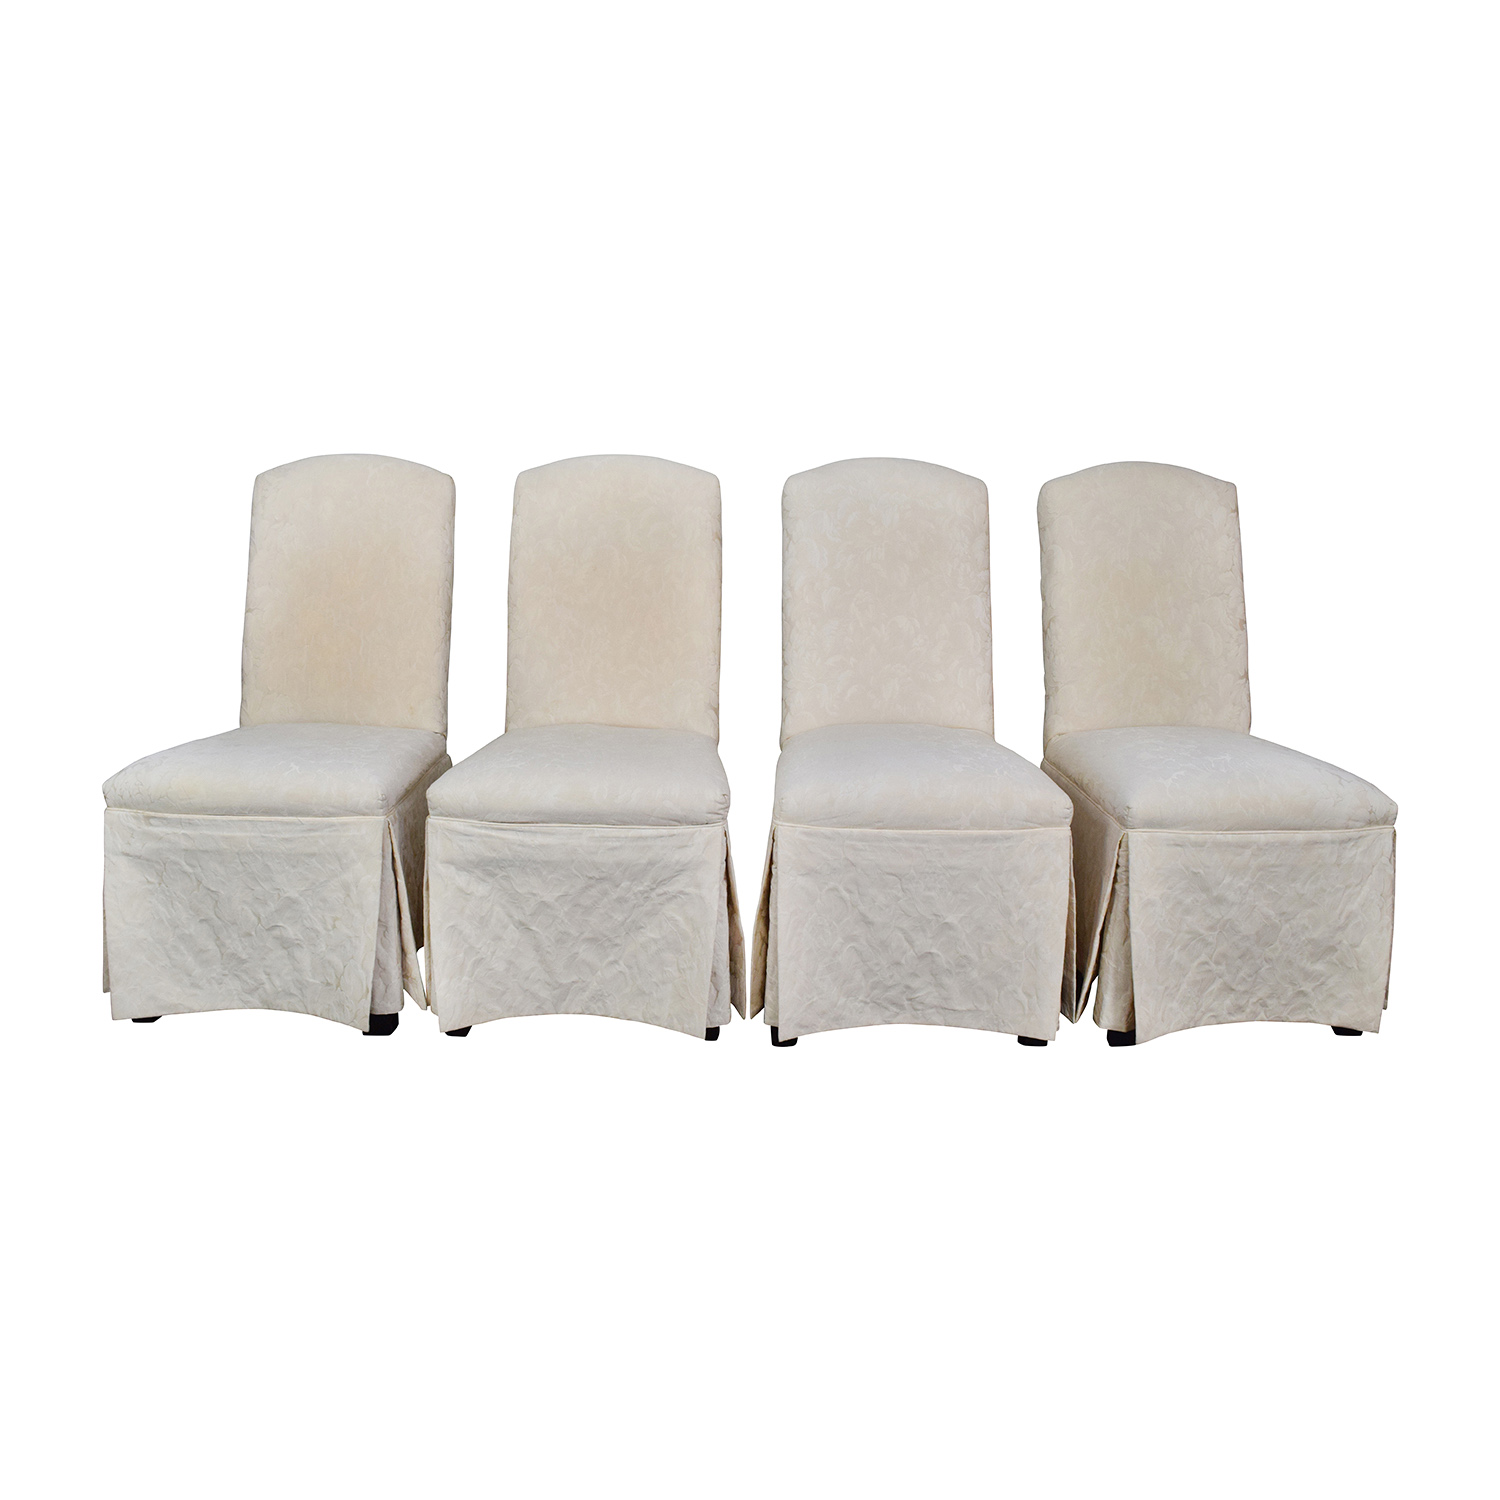 Thomasville Thomasville Ivory Upholstered Dining Chairs nj